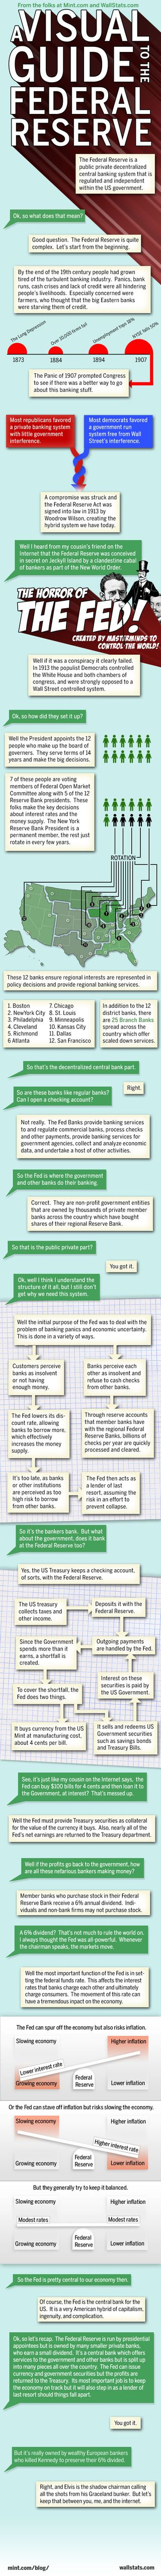 Visual-guide-to-the-federal-reserve-infographic